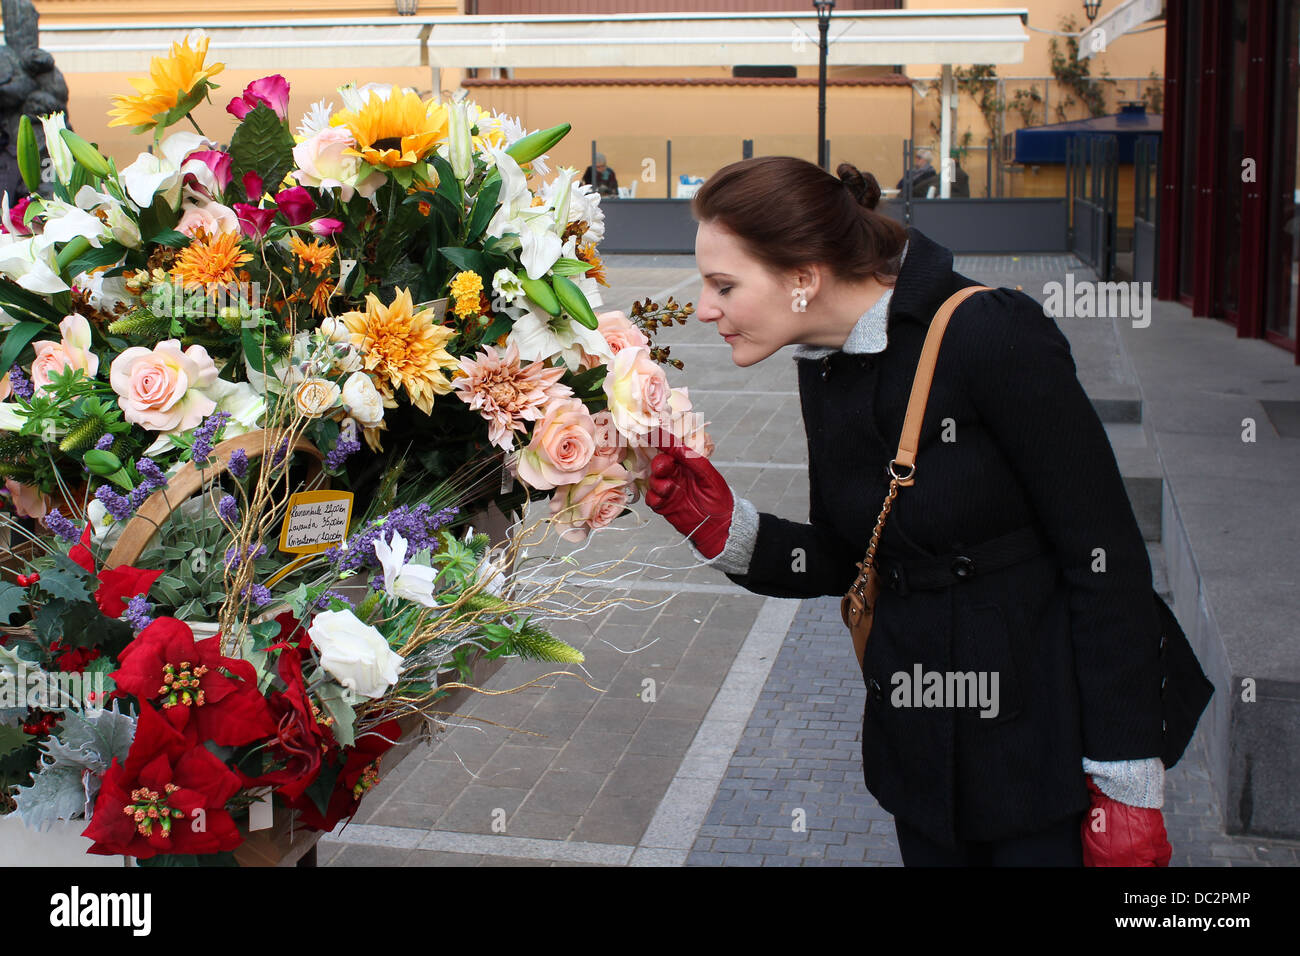 Woman smelling flower at market Stock Photo